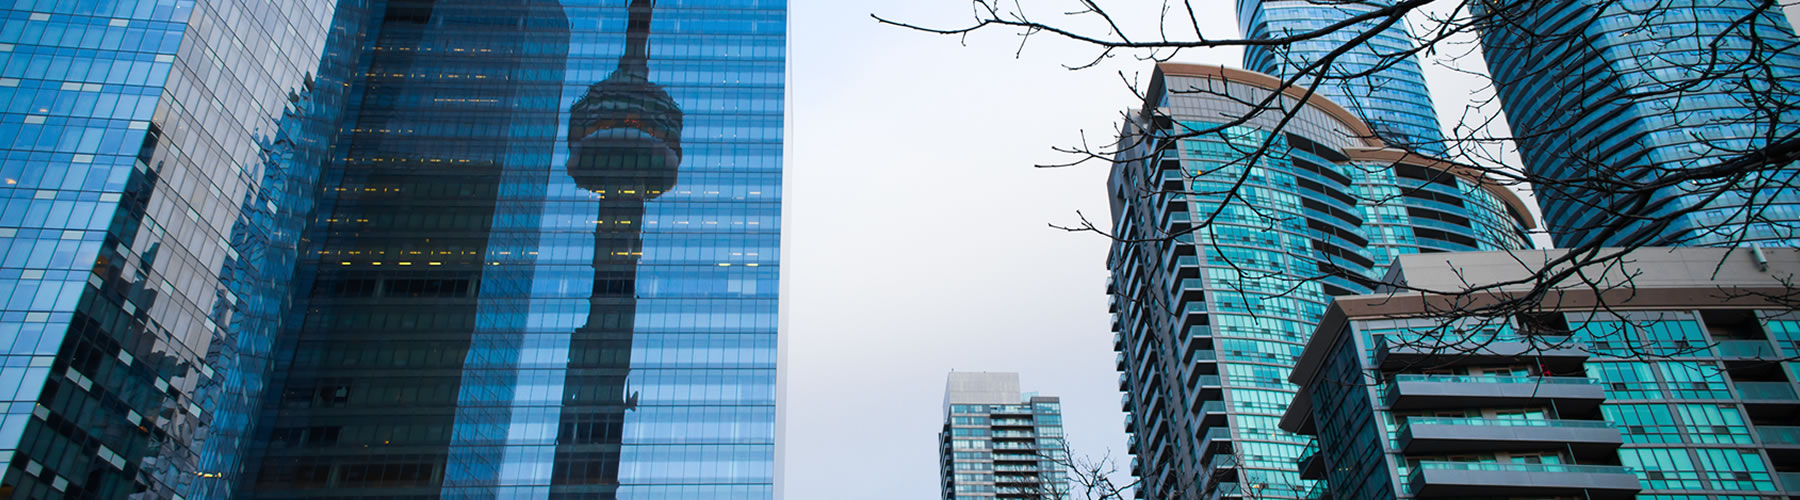 CN Tower and skyscrapers